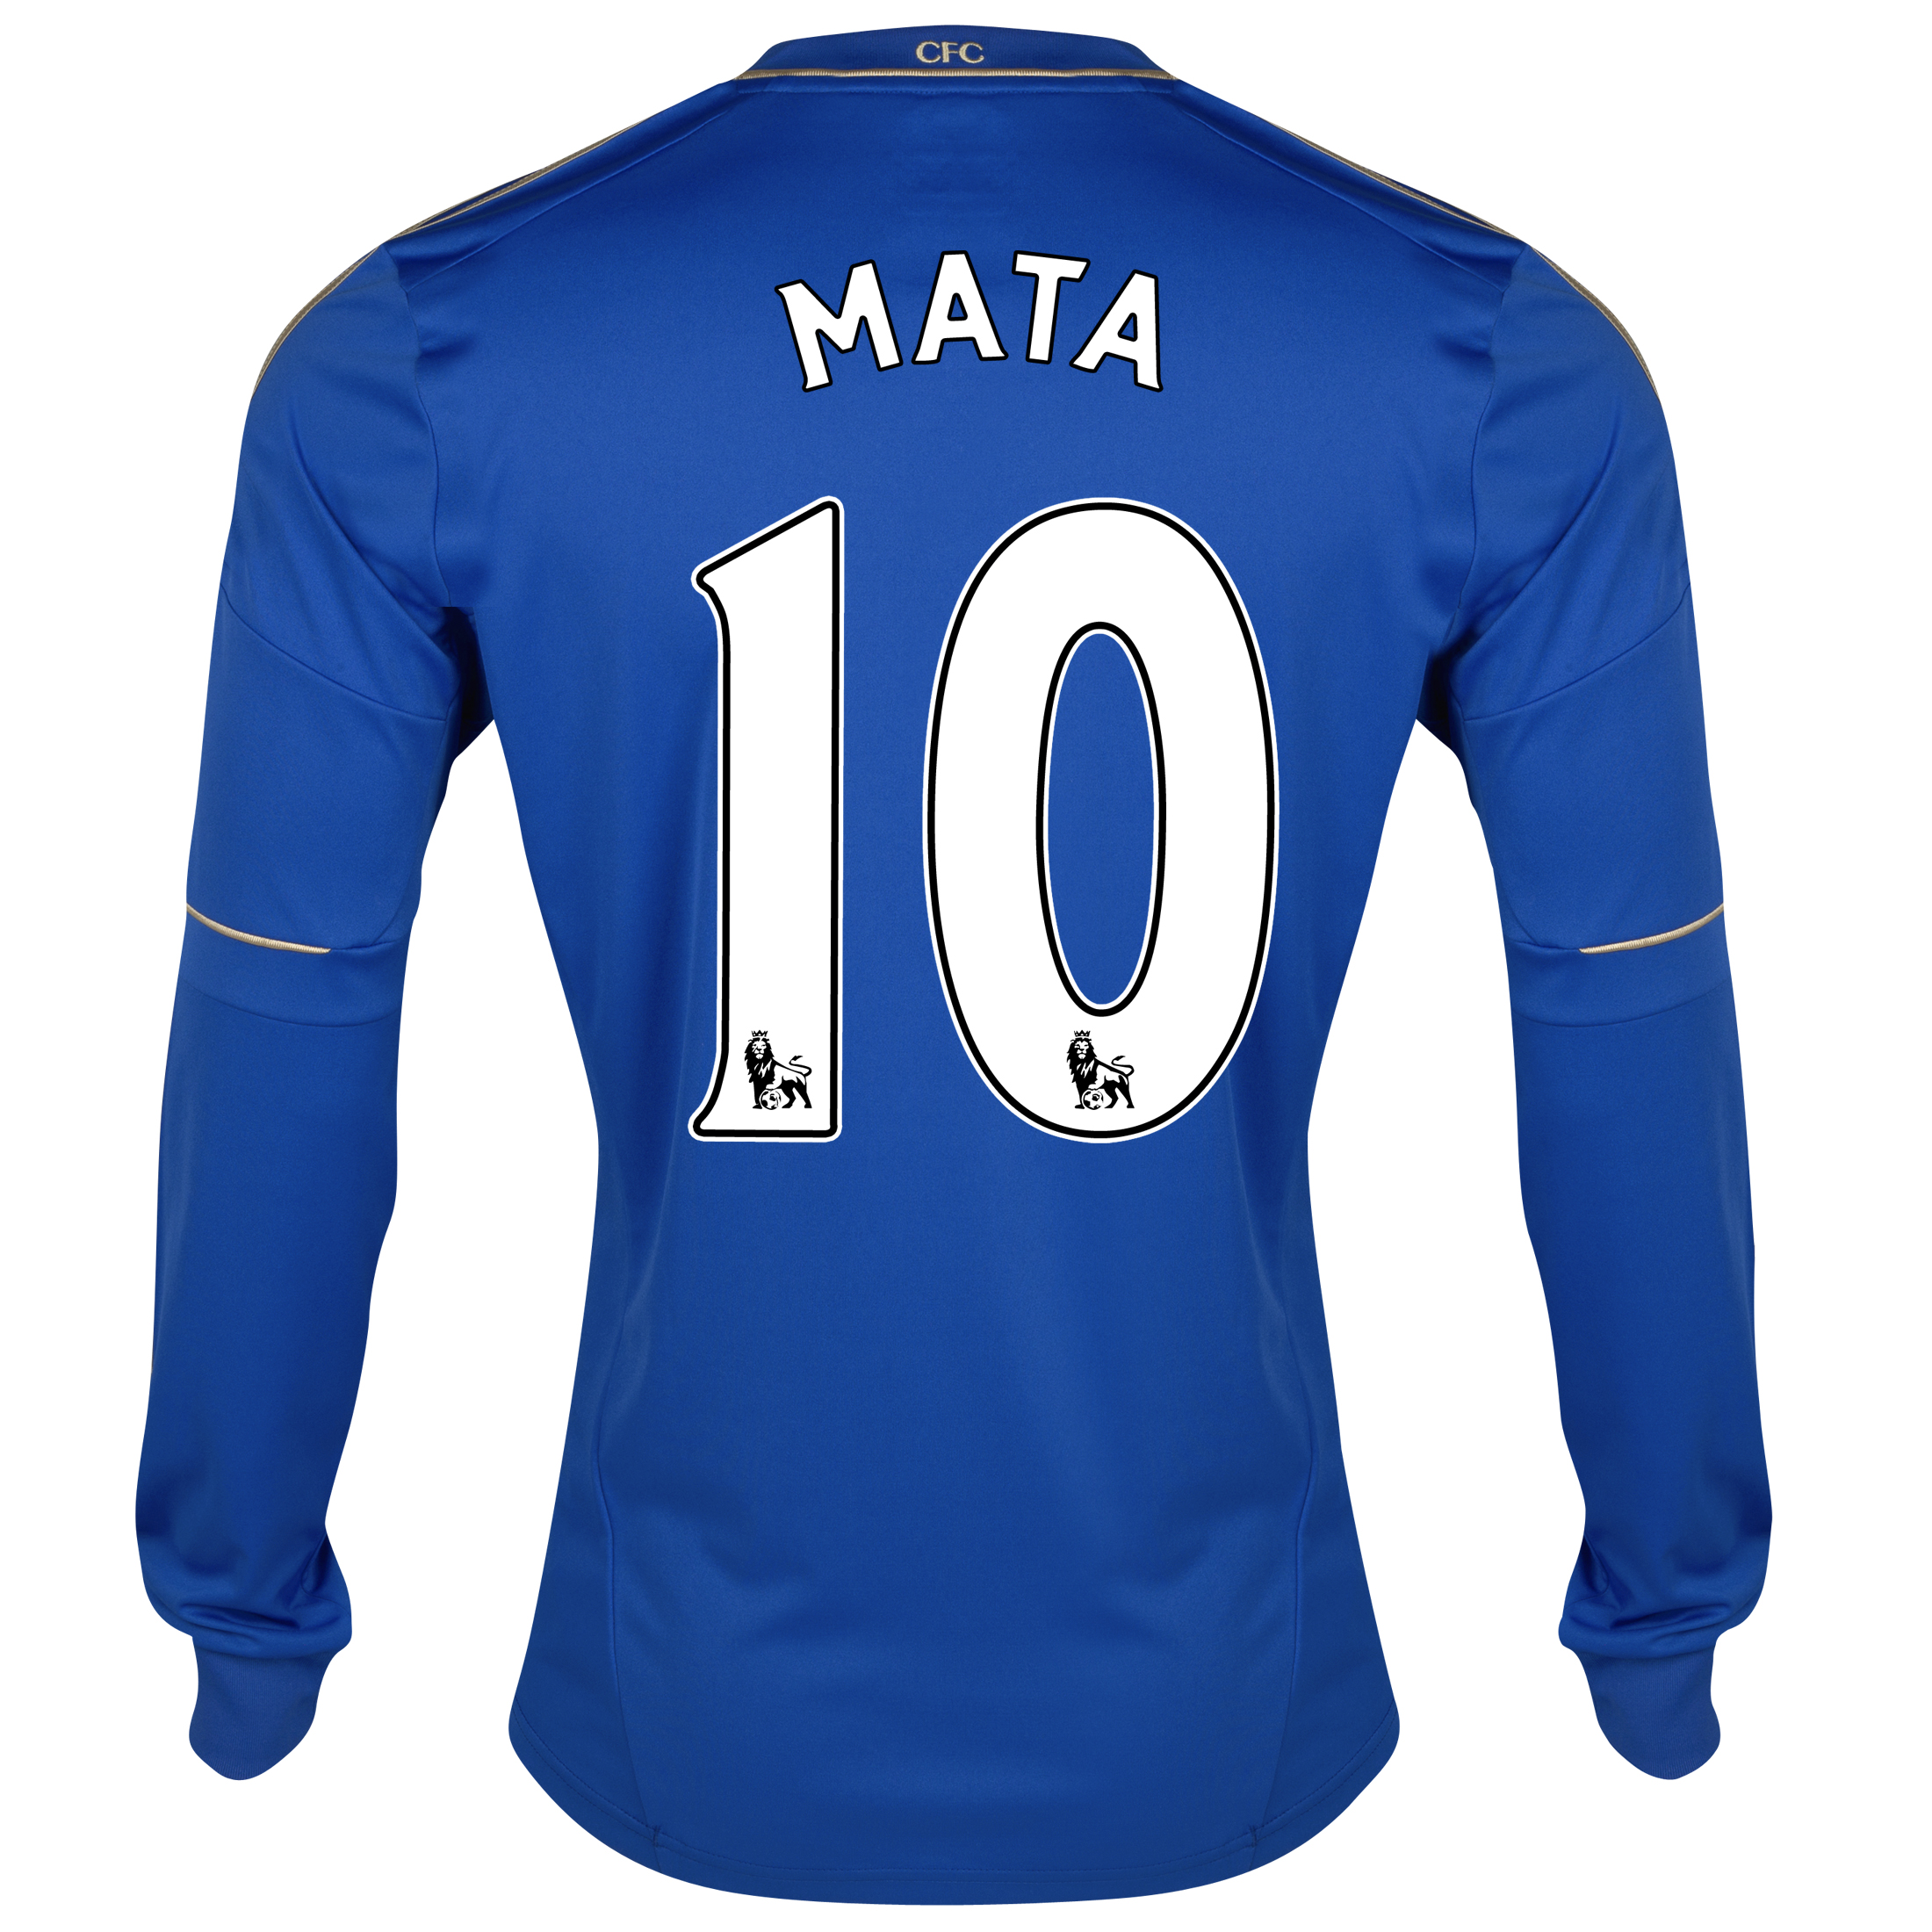 Chelsea Home Shirt 2012/13 - Long Sleeved - Youths with Mata 10 printing